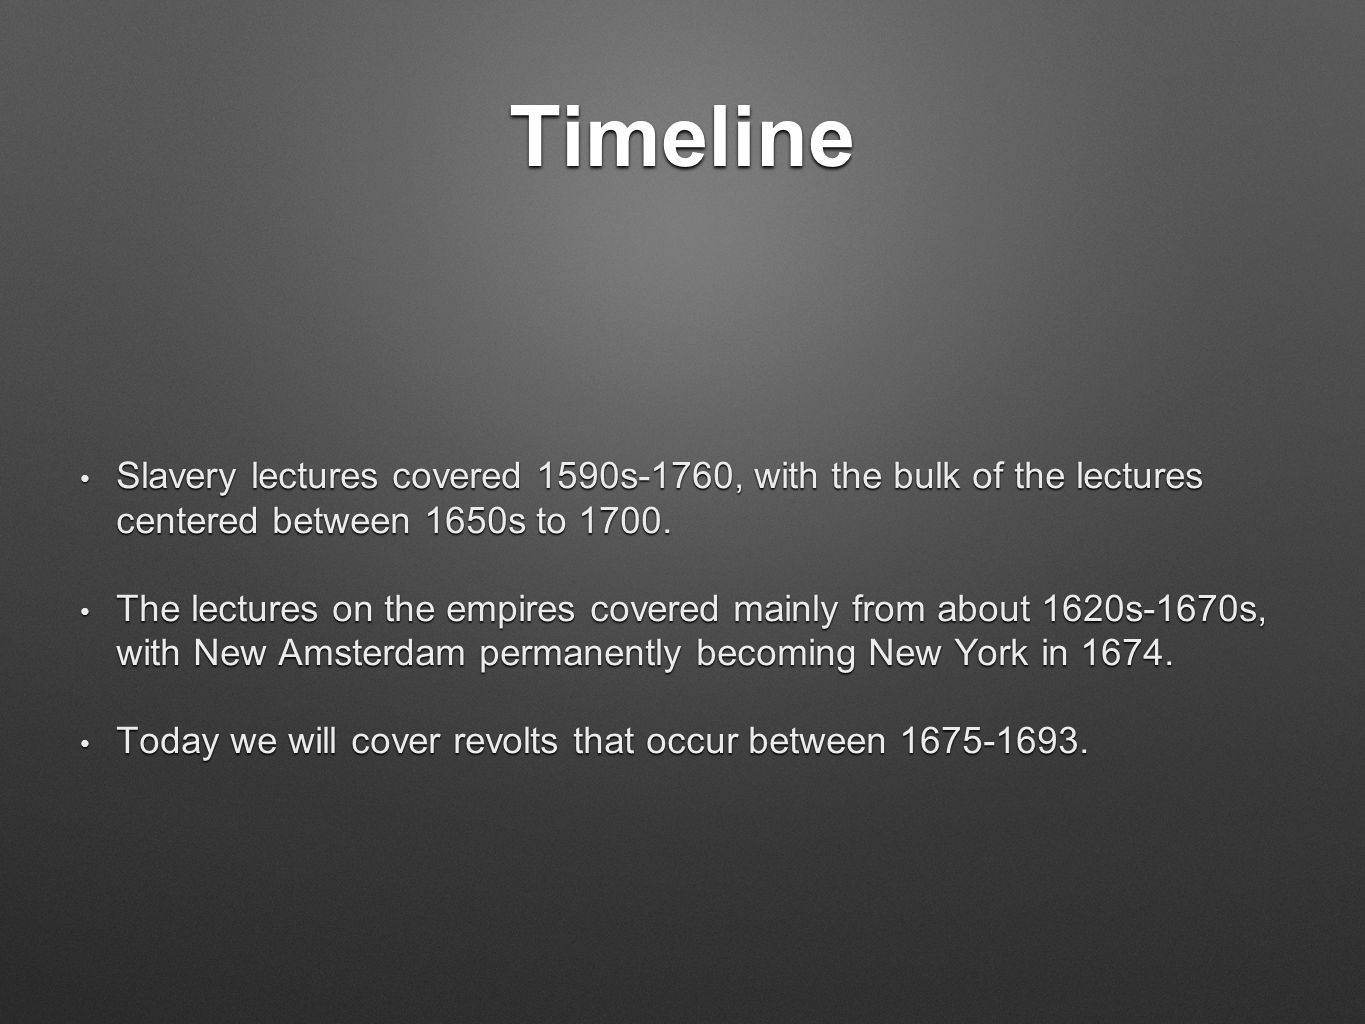 Timeline Slavery lectures covered 1590s-1760, with the bulk of the lectures centered between 1650s to 1700. Slavery lectures covered 1590s-1760, with